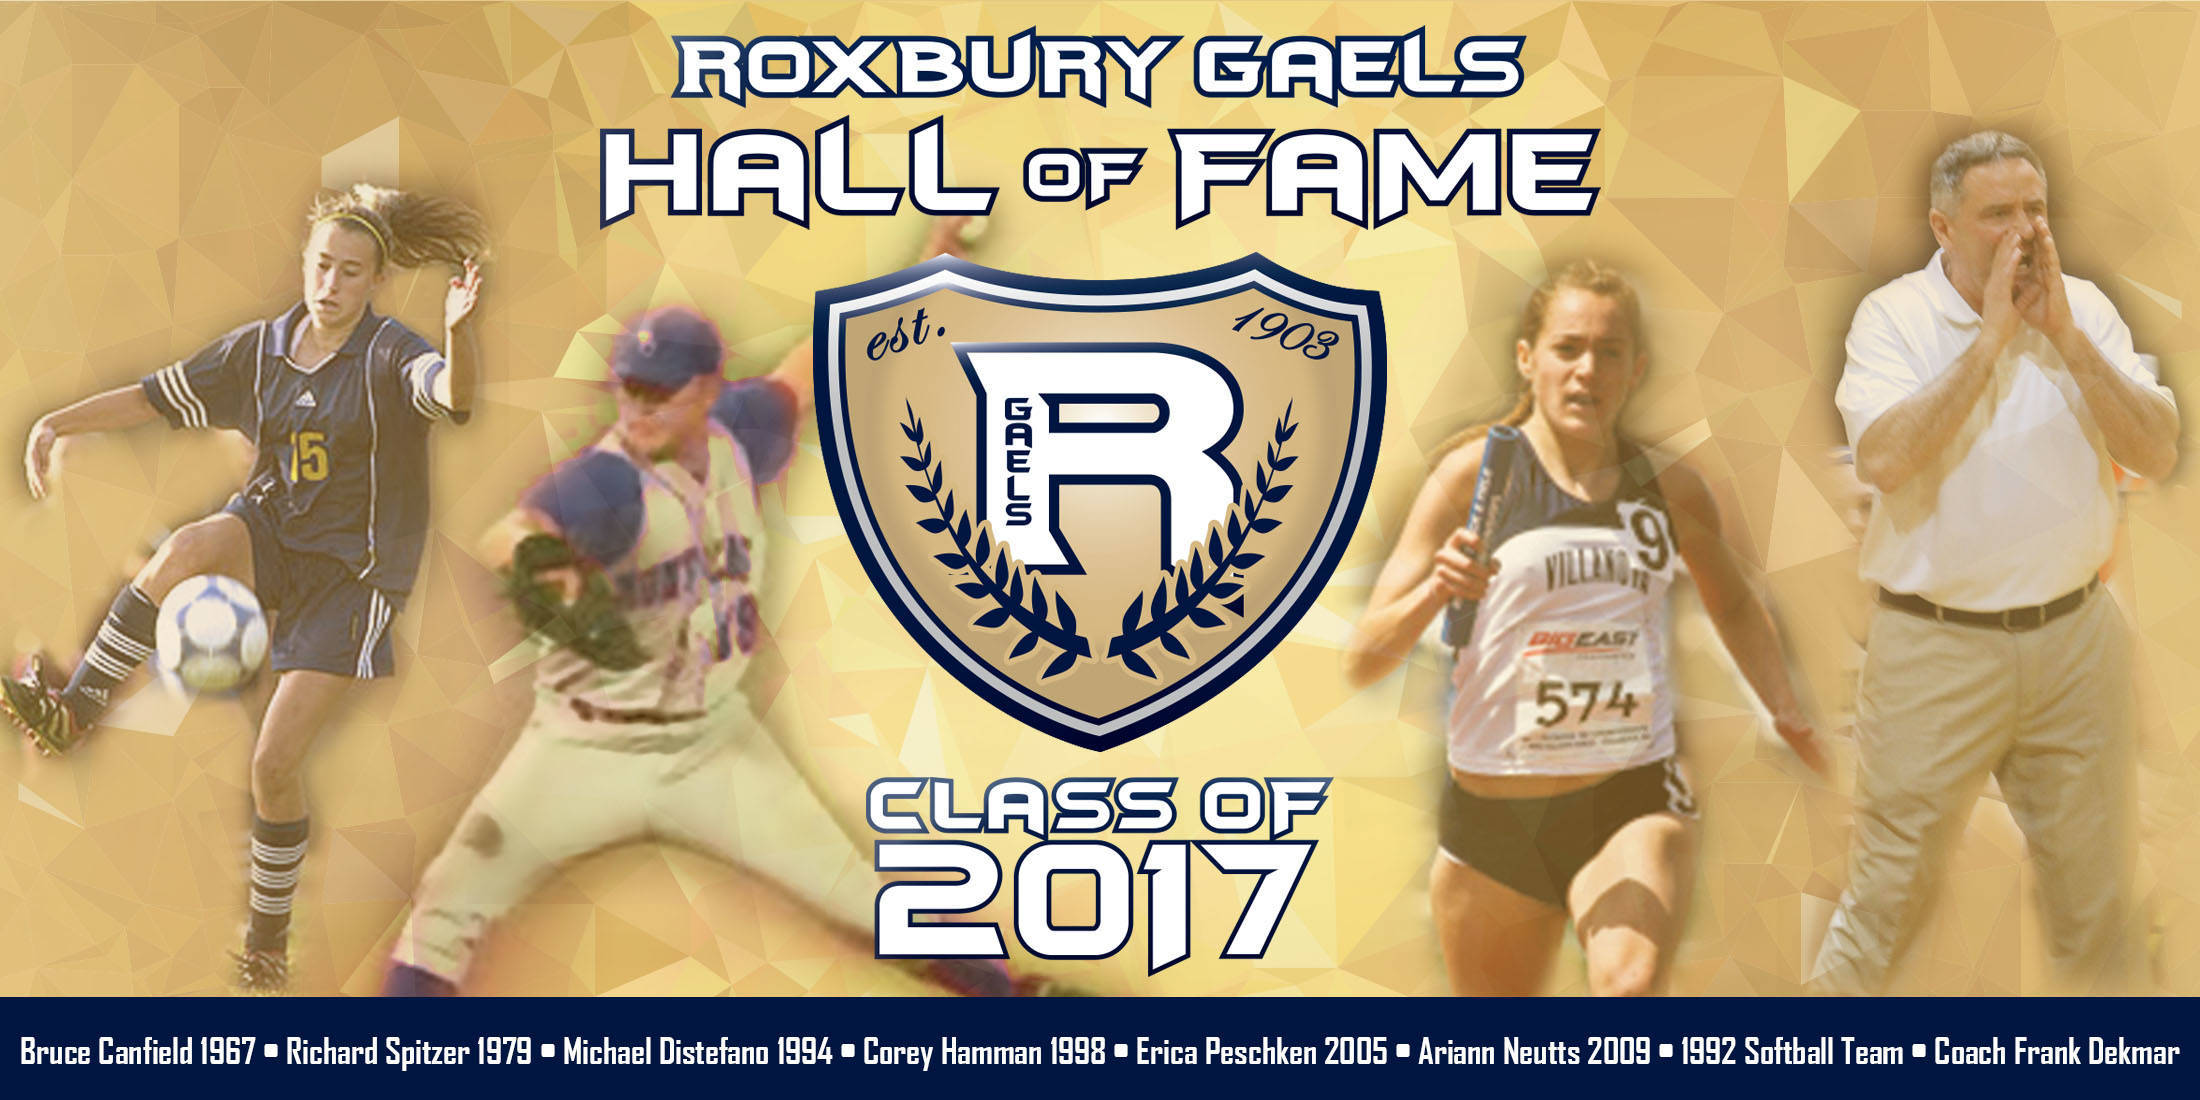 e4bebf898055f115a69b_Roxbury_HS_Hall_of_Fame_Class_of_2017.jpg